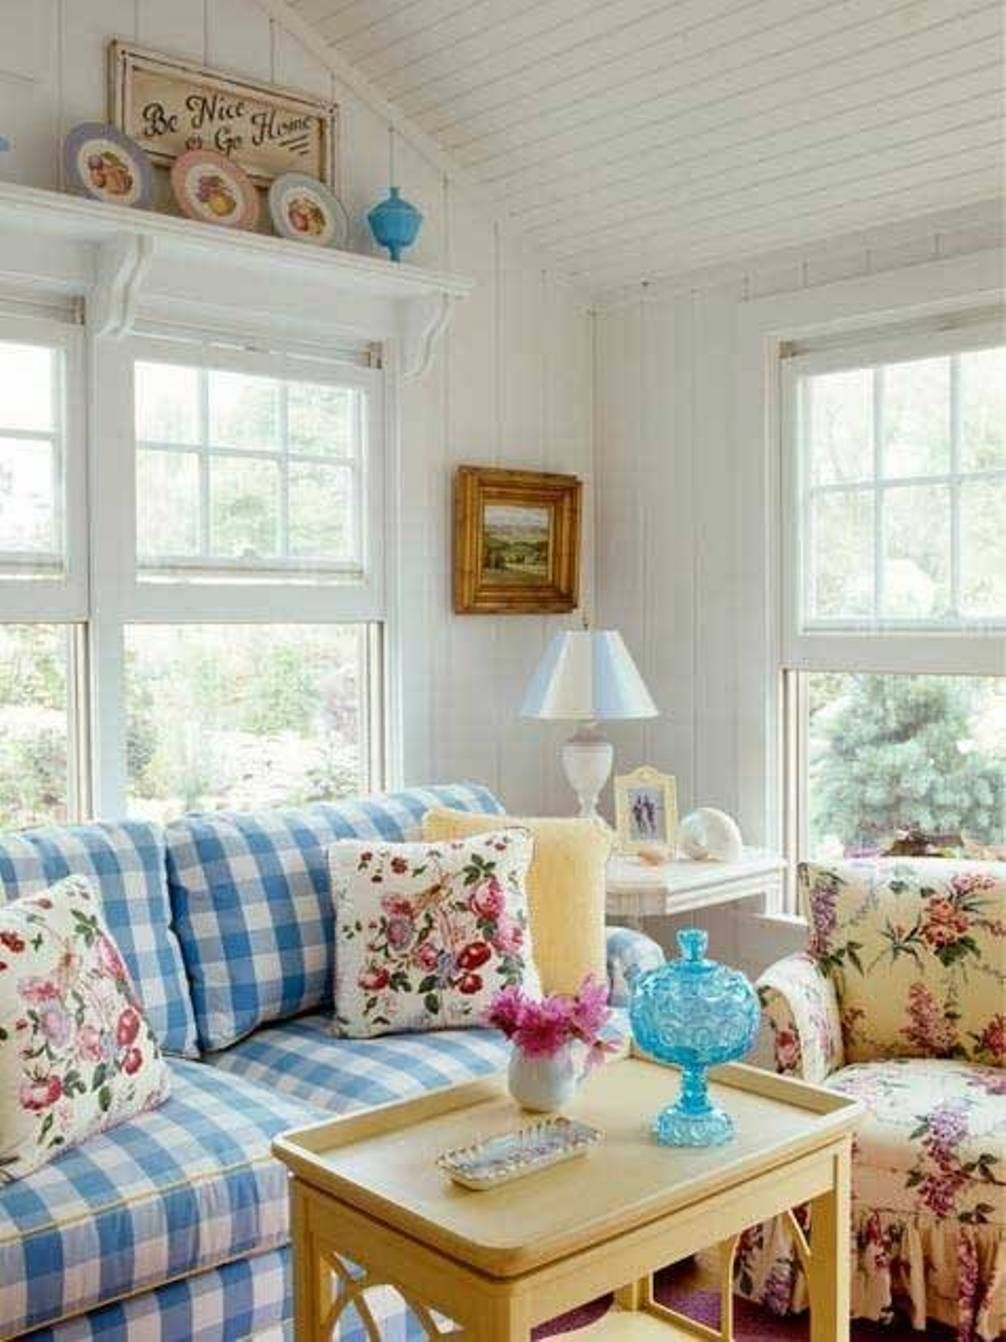 Living Room Fresh Cottage Style Rooms With Lovely Sofa Covers And Fl Beige Pillows Open Shelf Over The